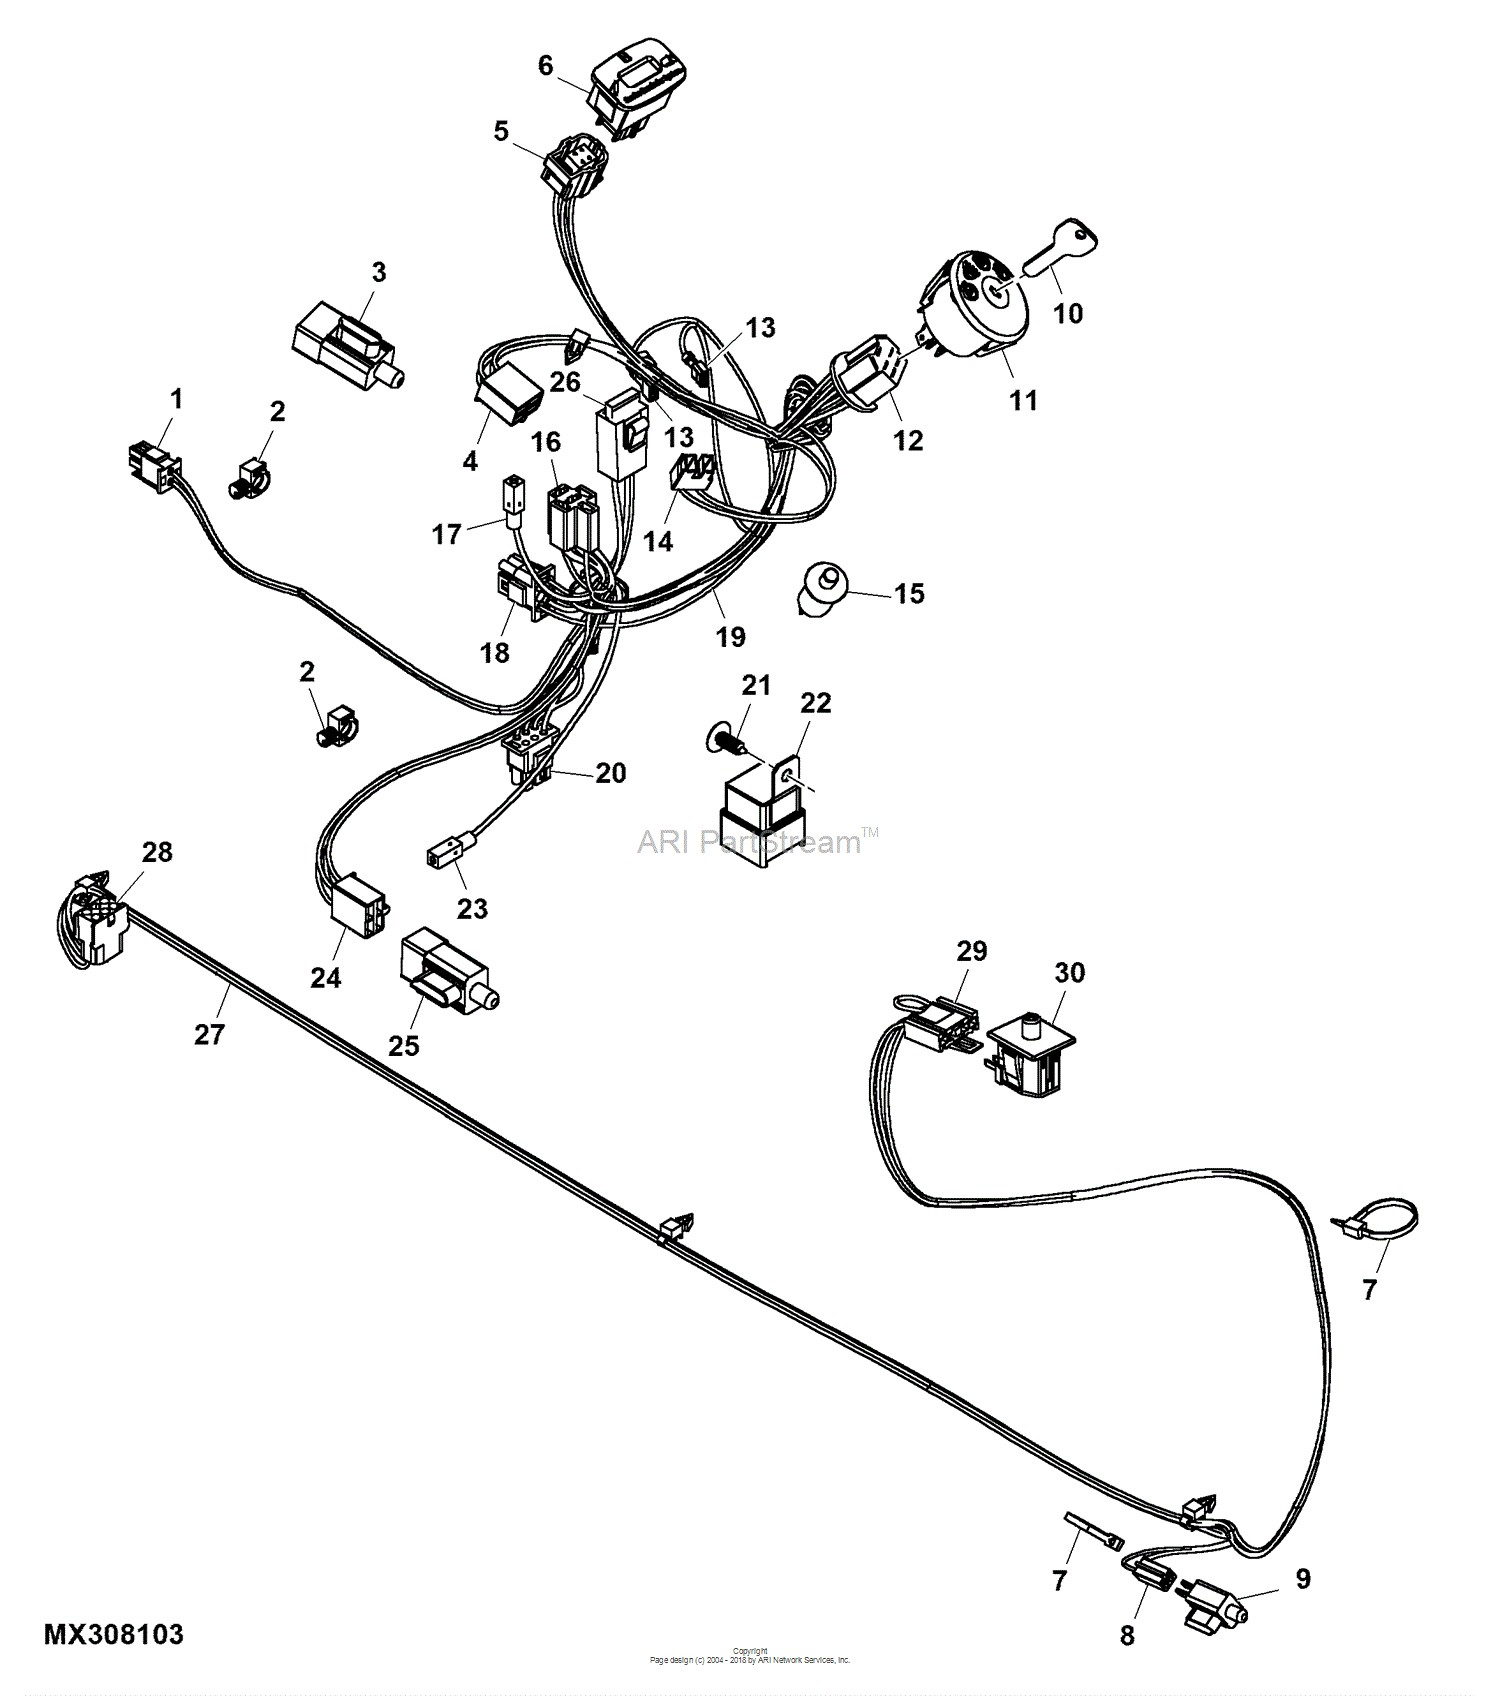 [MANUALS] John Deere La145 Parts Diagram [PDF] FULL